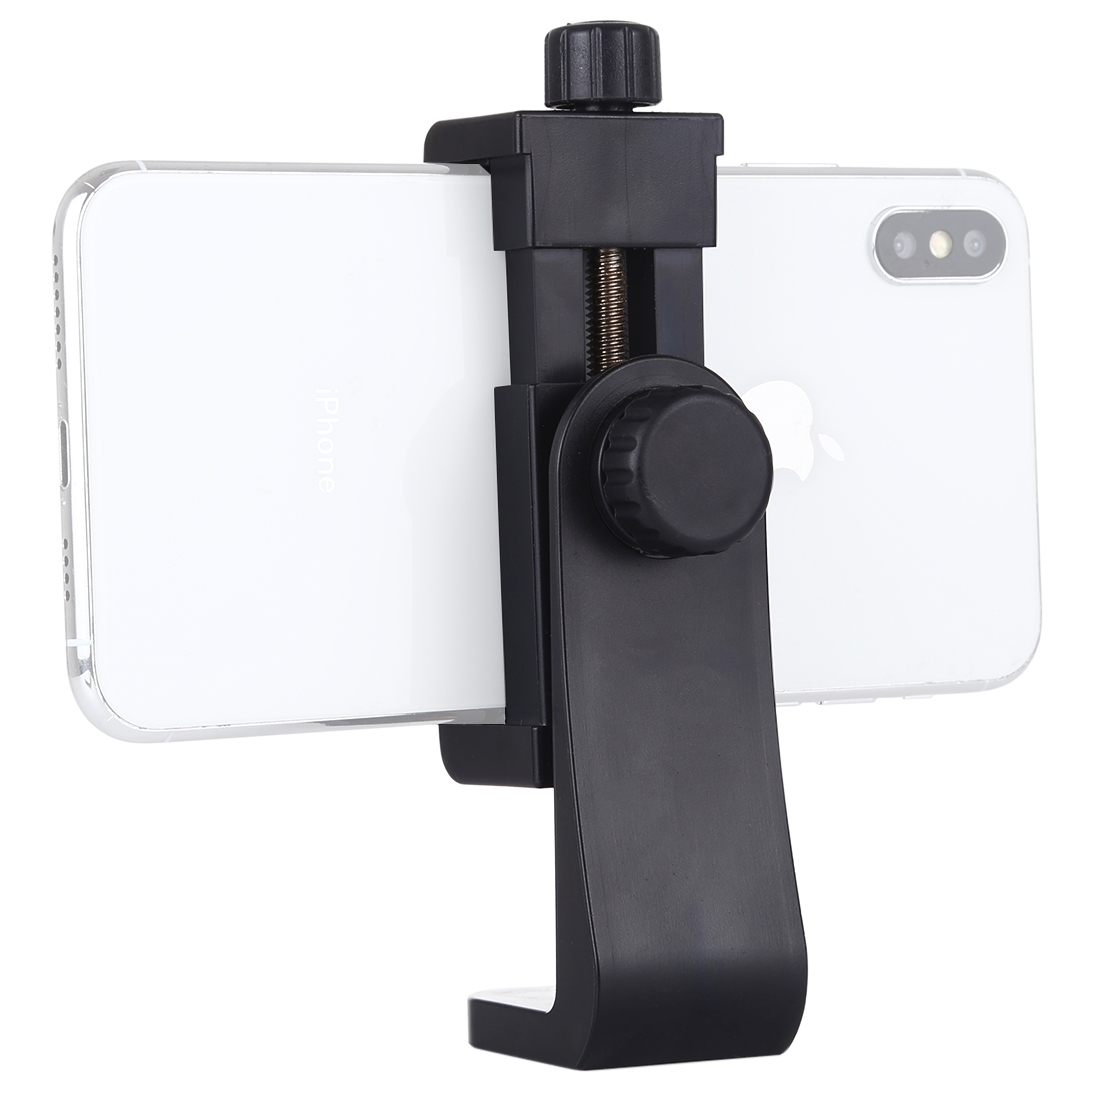 PULUZ 360 Degree Rotating Universal Horizontal Vertical Shooting Phone Clamp Holder Bracket for iPhone, Galaxy, Huawei, Xiaomi, Sony, HTC, Google and other Smartphones